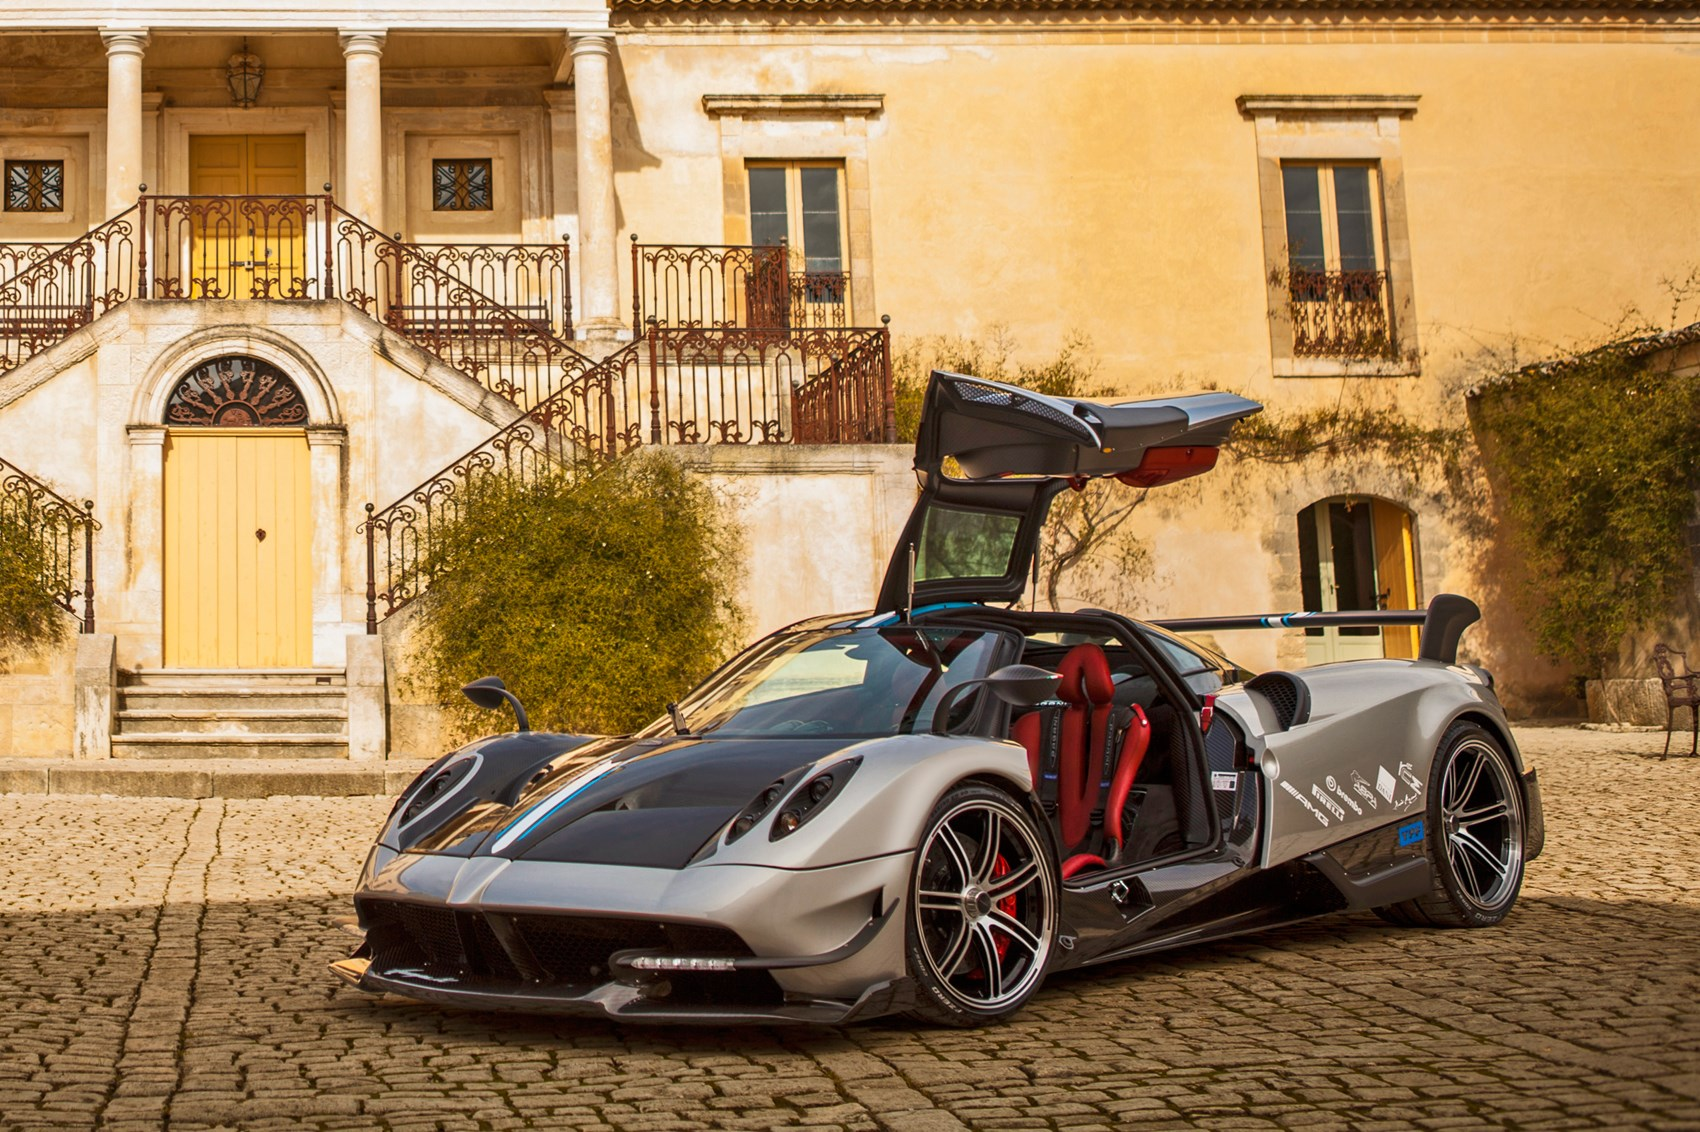 Pagani Huayra Bc Lhd And Rhd Cars Ready For Delivery Off Market